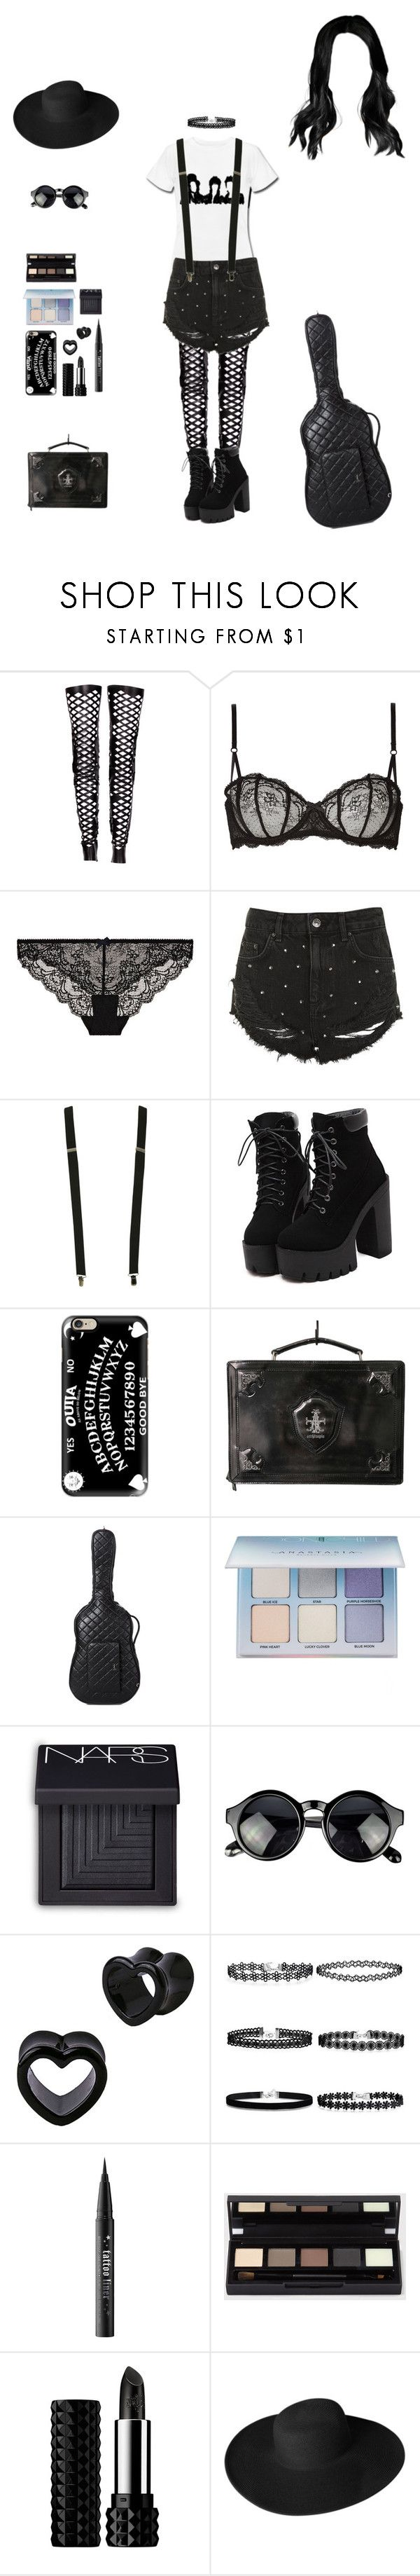 """""""Palaye Royale concert"""" by gloomystandall ❤ liked on Polyvore featuring Rodarte, Heidi Klum, Topshop, Wet Seal, Casetify, Chanel, Anastasia Beverly Hills, NARS Cosmetics, Kat Von D and Dorfman Pacific"""